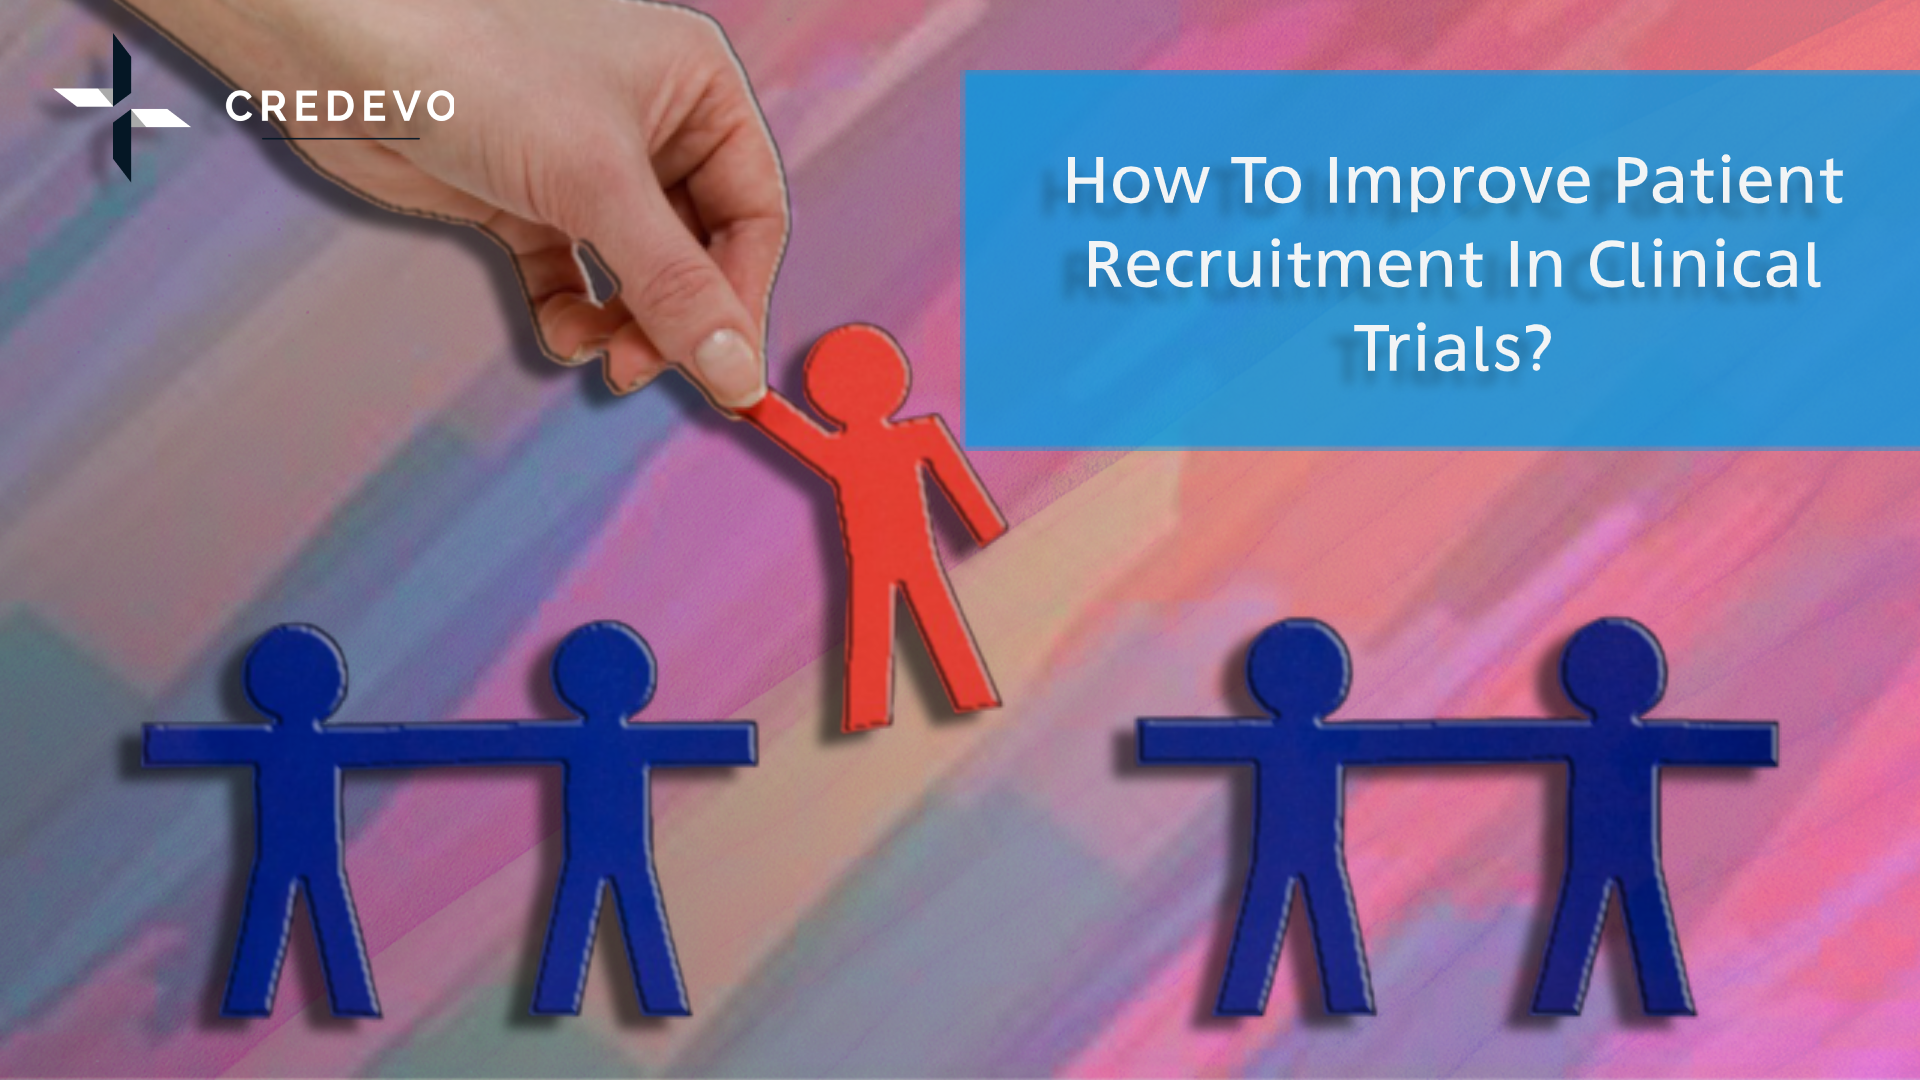 How To Improve Patient Recruitment In Clinical Trials Credevo Articles